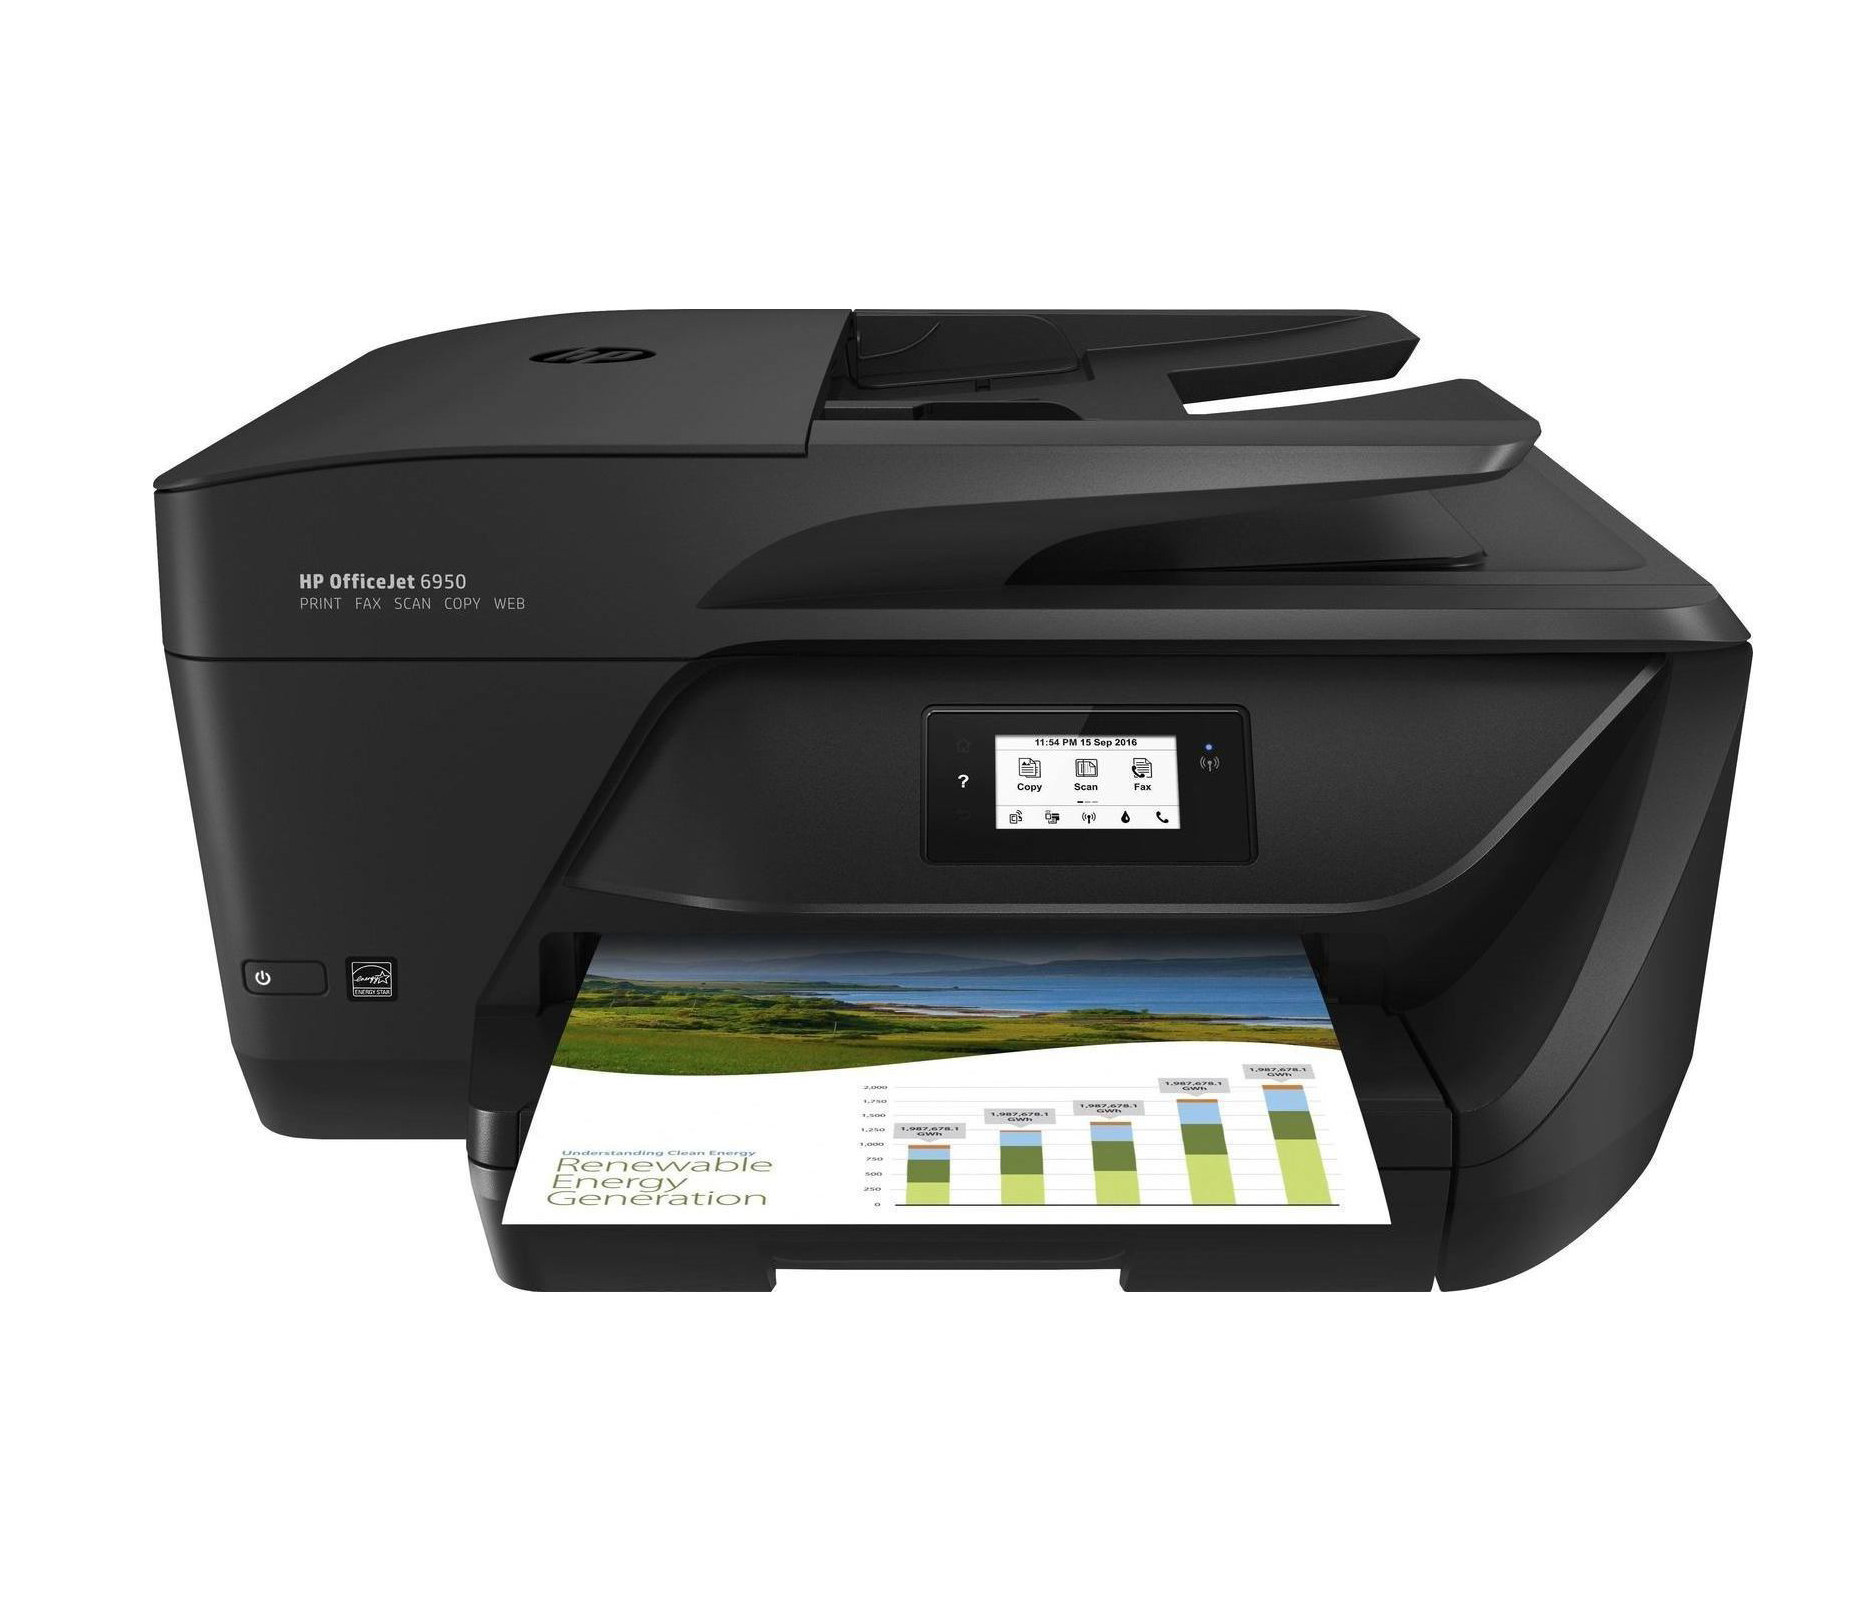 HP OfficeJet 6950 e-All-in-One Πολυμηχάνημα